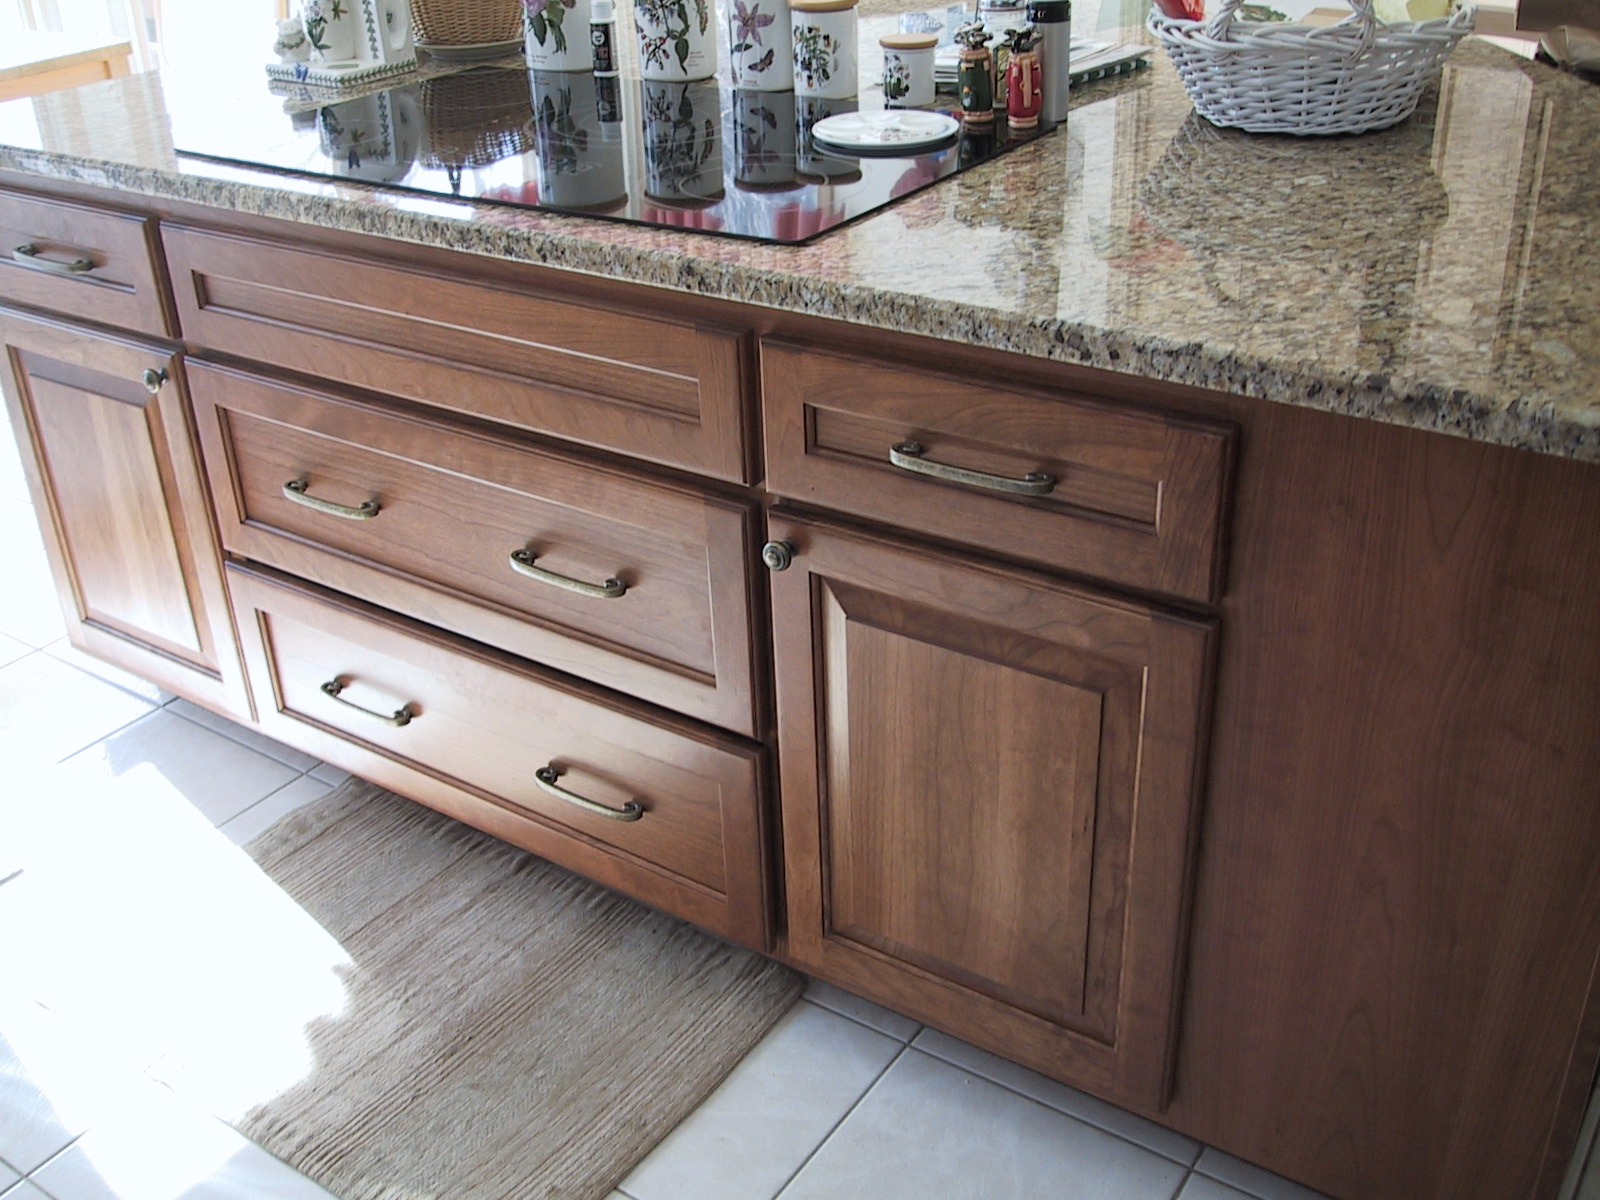 Is Refacing Kitchen Cabinets Worth It Replace The Cabinets And Keep The Granite Countertops